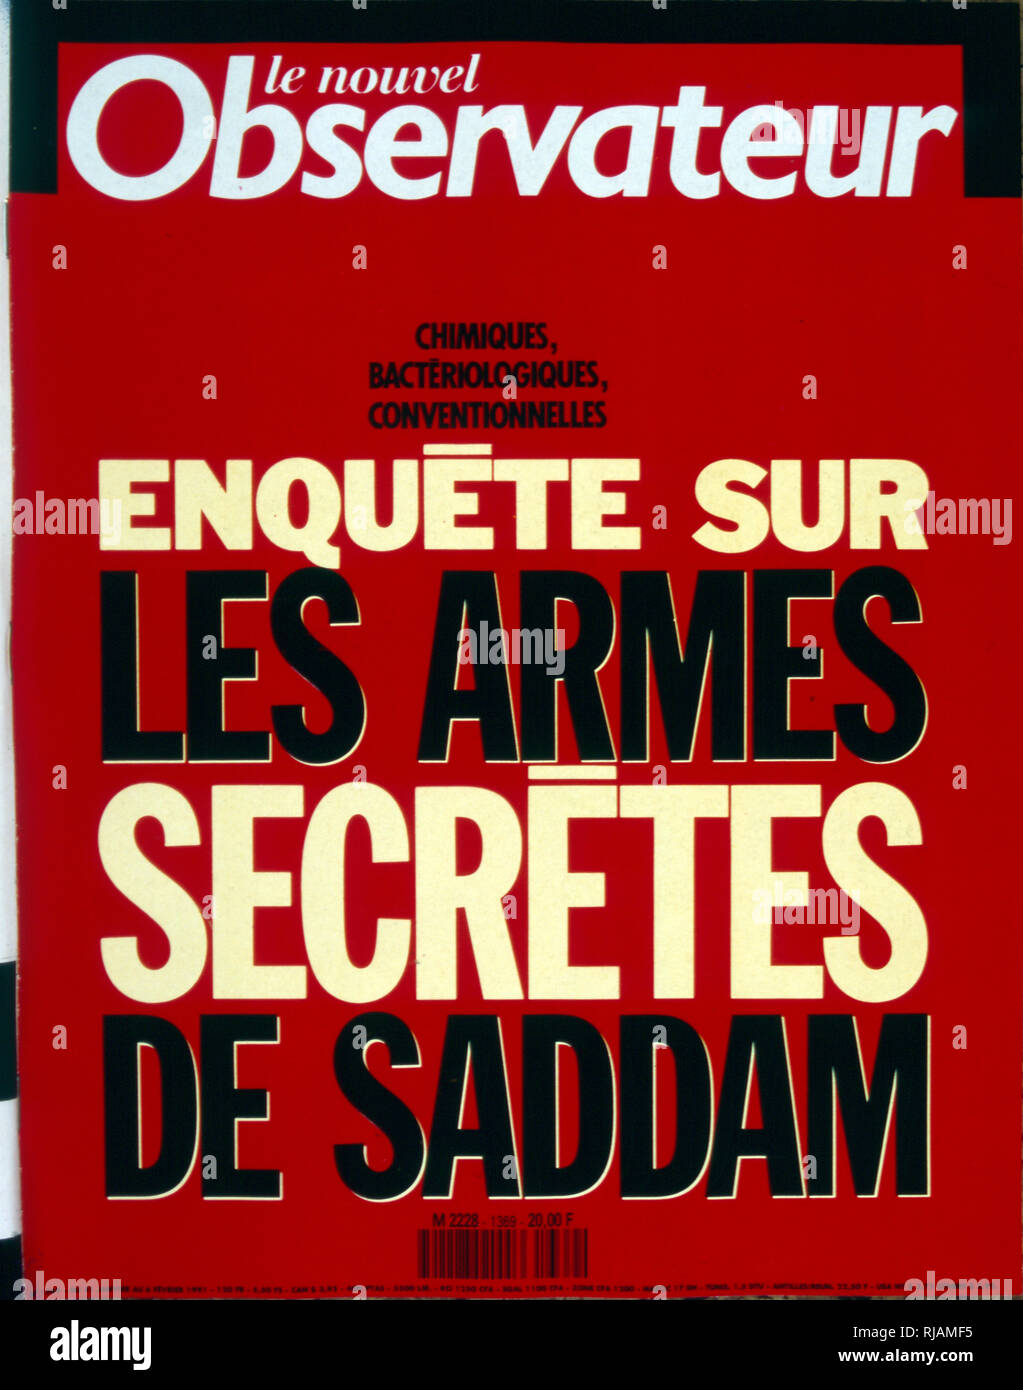 Front Page of the French publication 'le Nouvel Observateur' reporting an inquiry into Chemical, Biological and conventional weapons of Saddam Hussein during the Gulf War, February 1991. The Gulf War (2 August 1990 - 28 February 1991), codenamed Operation Desert Shield and Operation Desert Storm, was a war waged by coalition forces from 35 nations led by the United States against Iraq in response to Iraq's invasion and annexation of Kuwait. - Stock Image